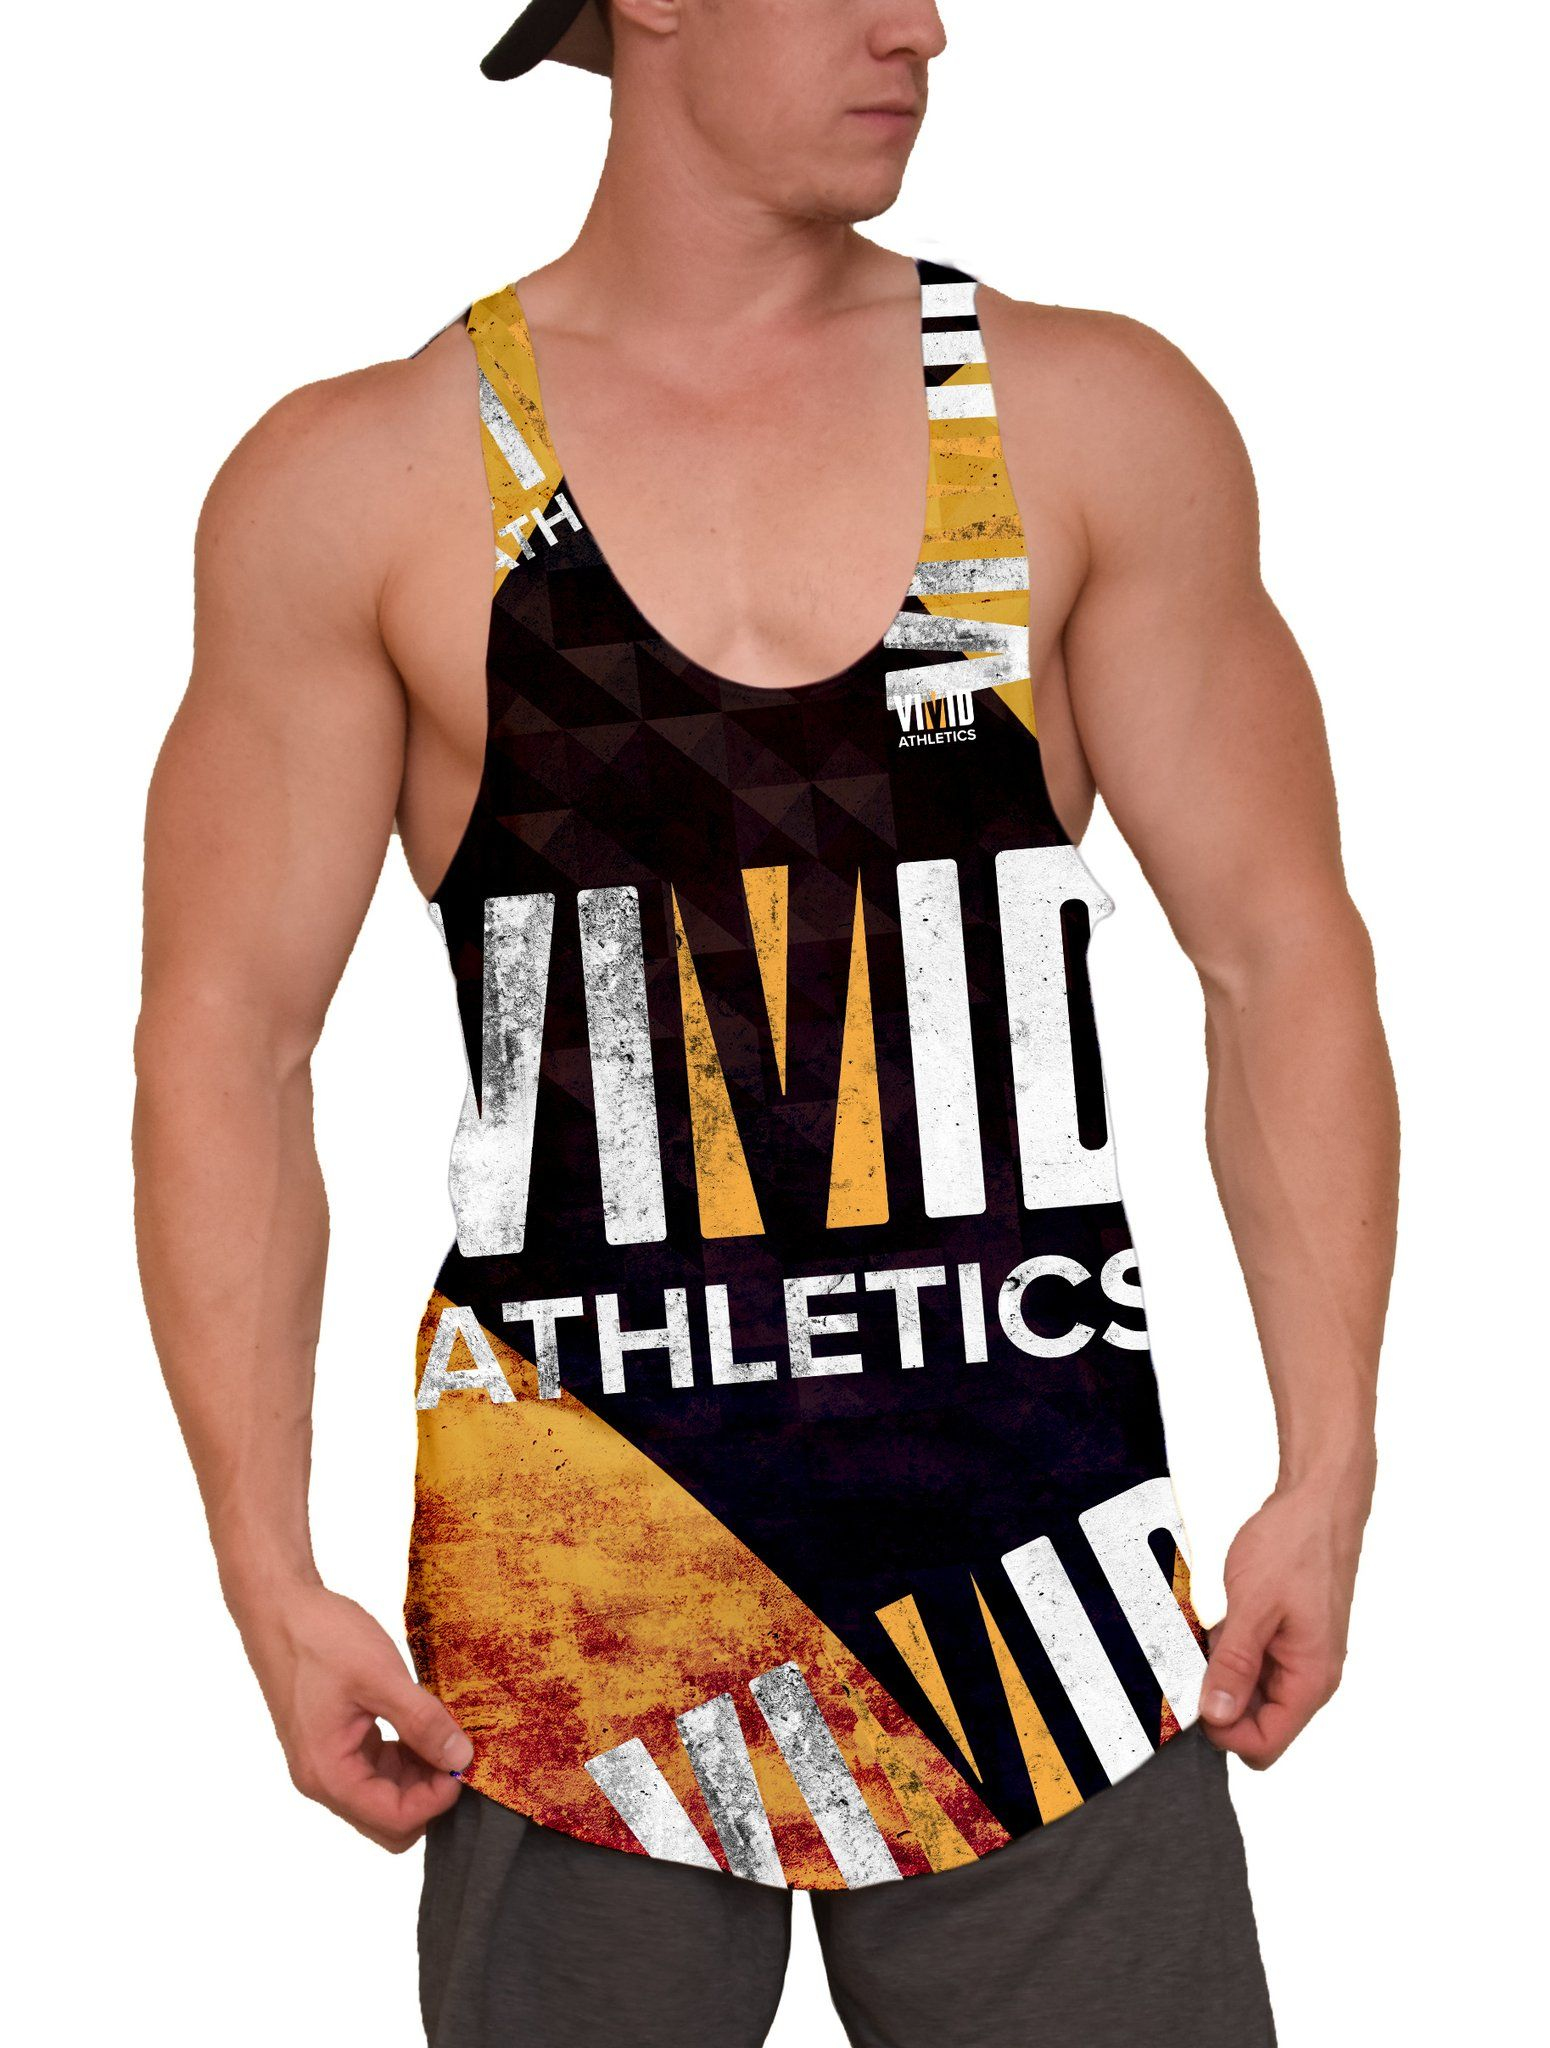 80 OFF Vivid Athletics Coupon and Promo Codes Stringer